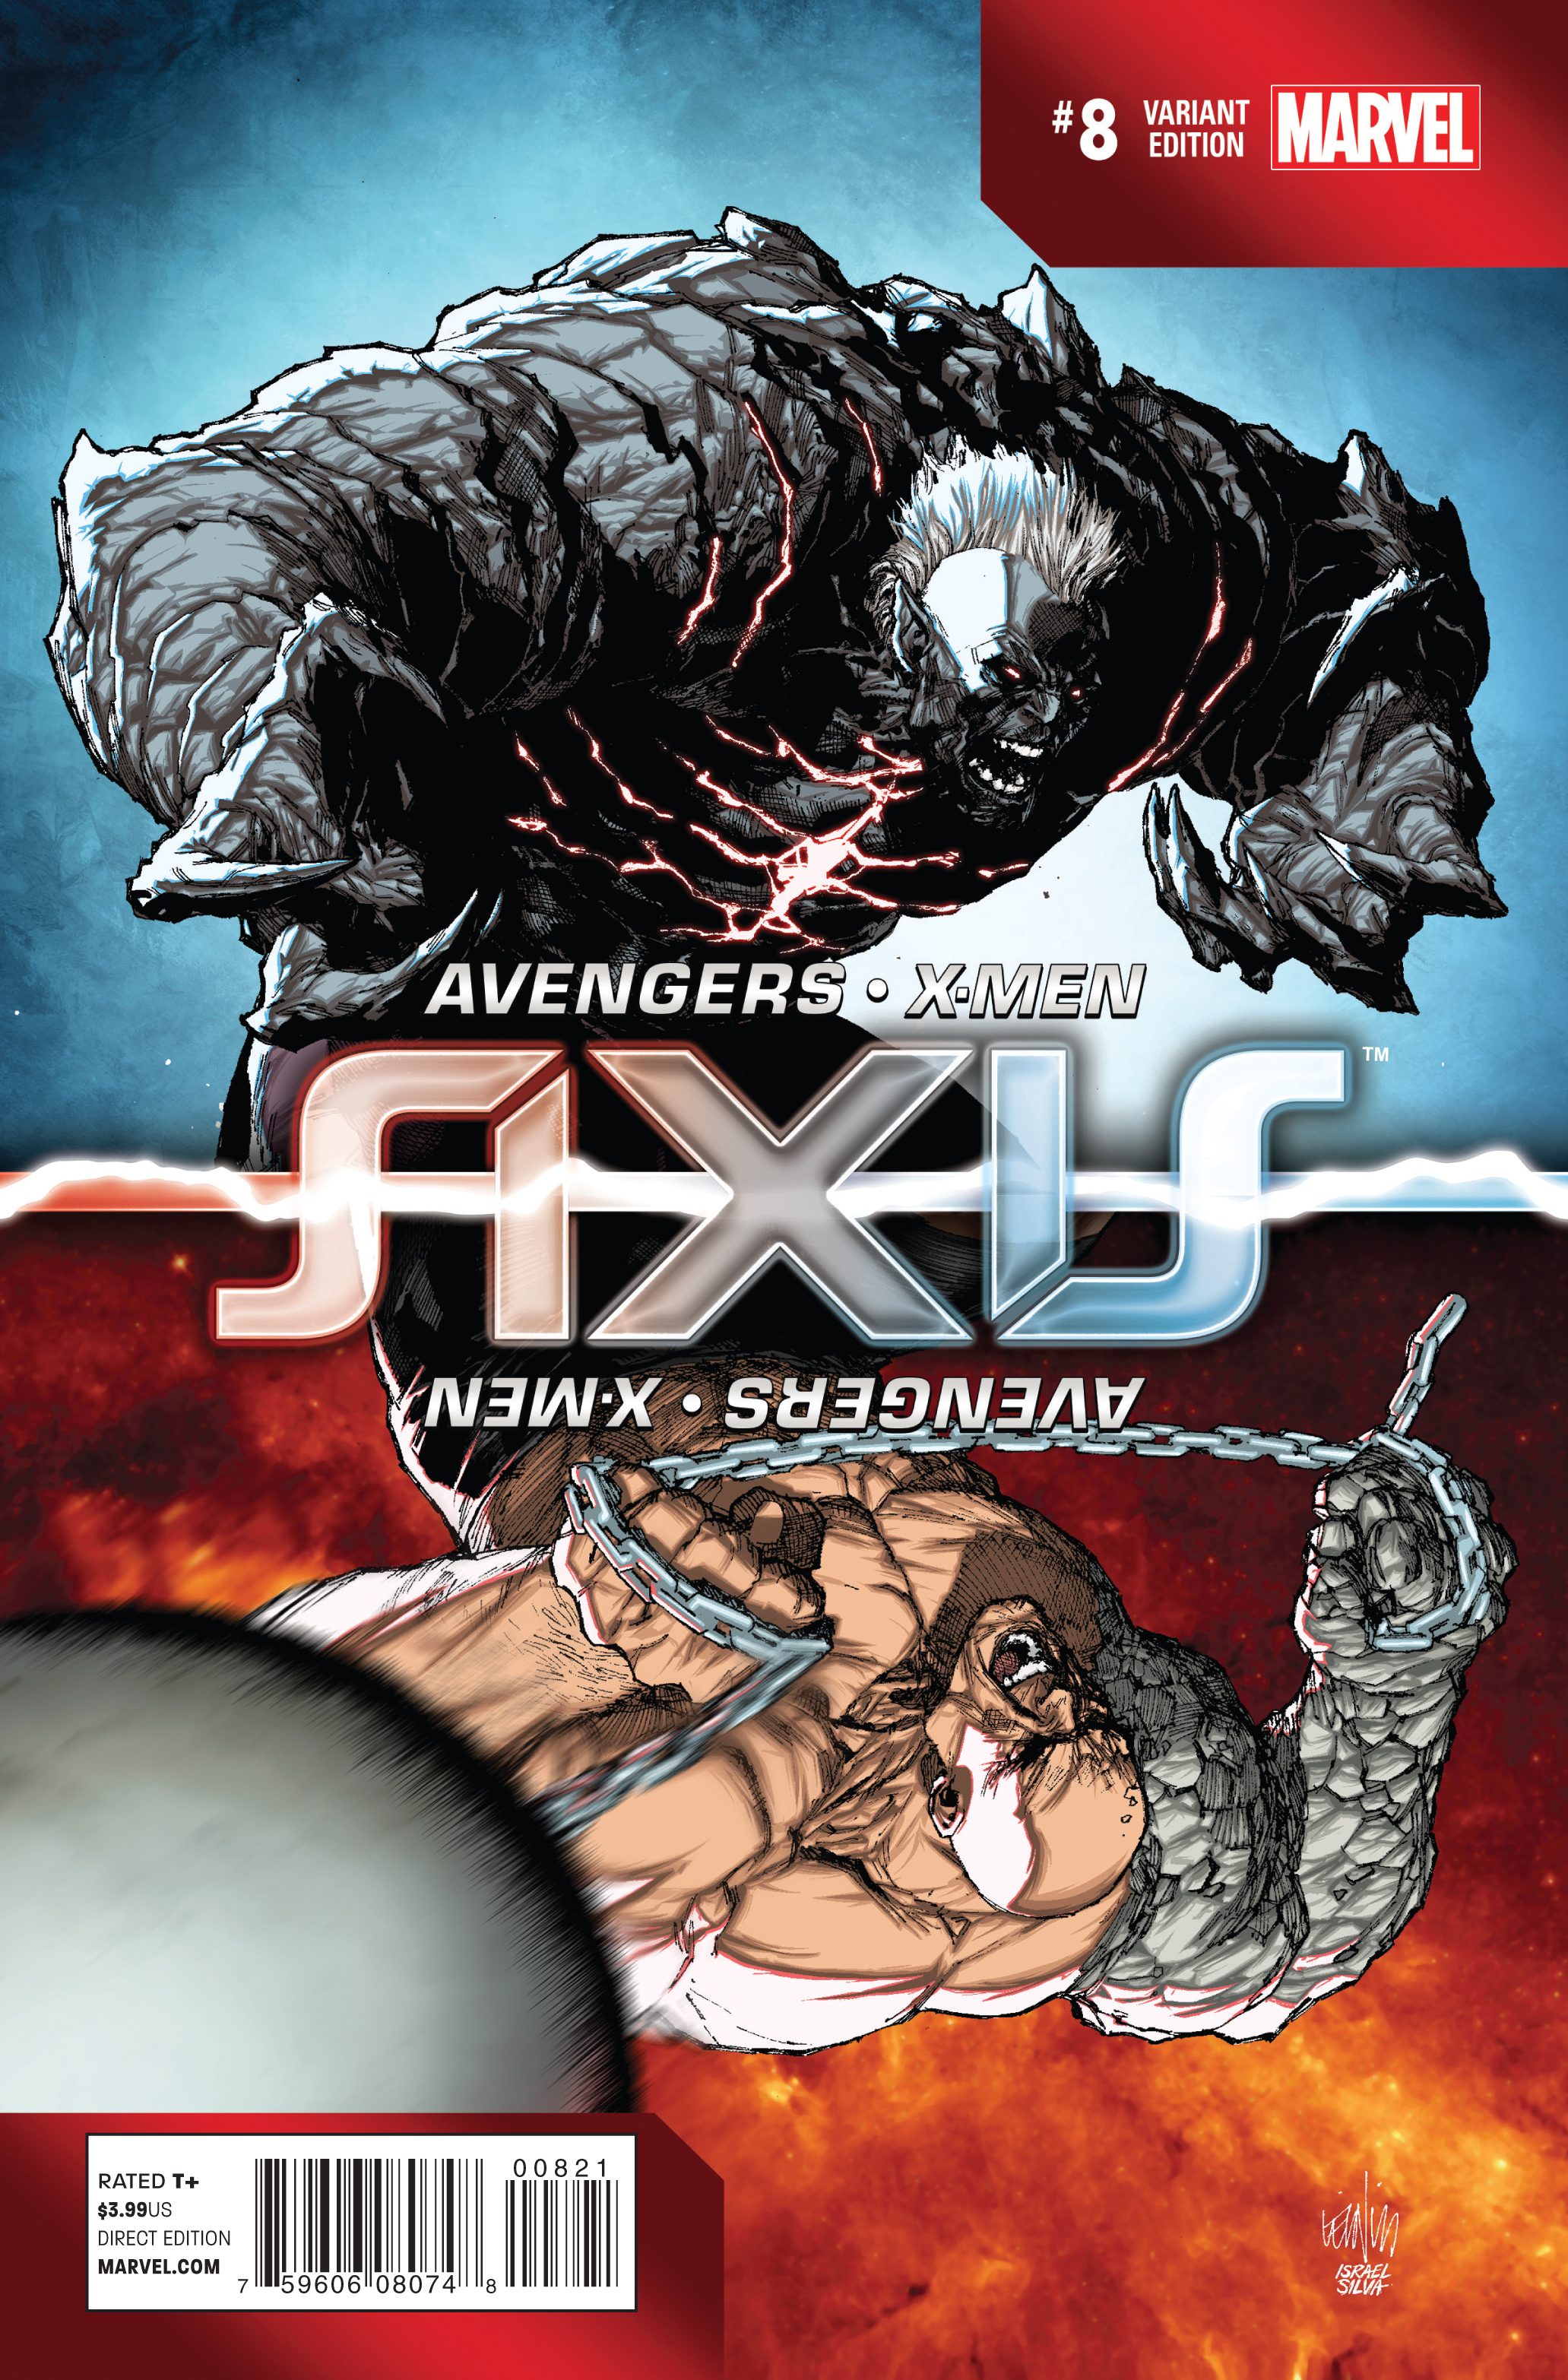 AVENGERS AND X-MEN AXIS #8 (OF 9) YU INVERSION VAR